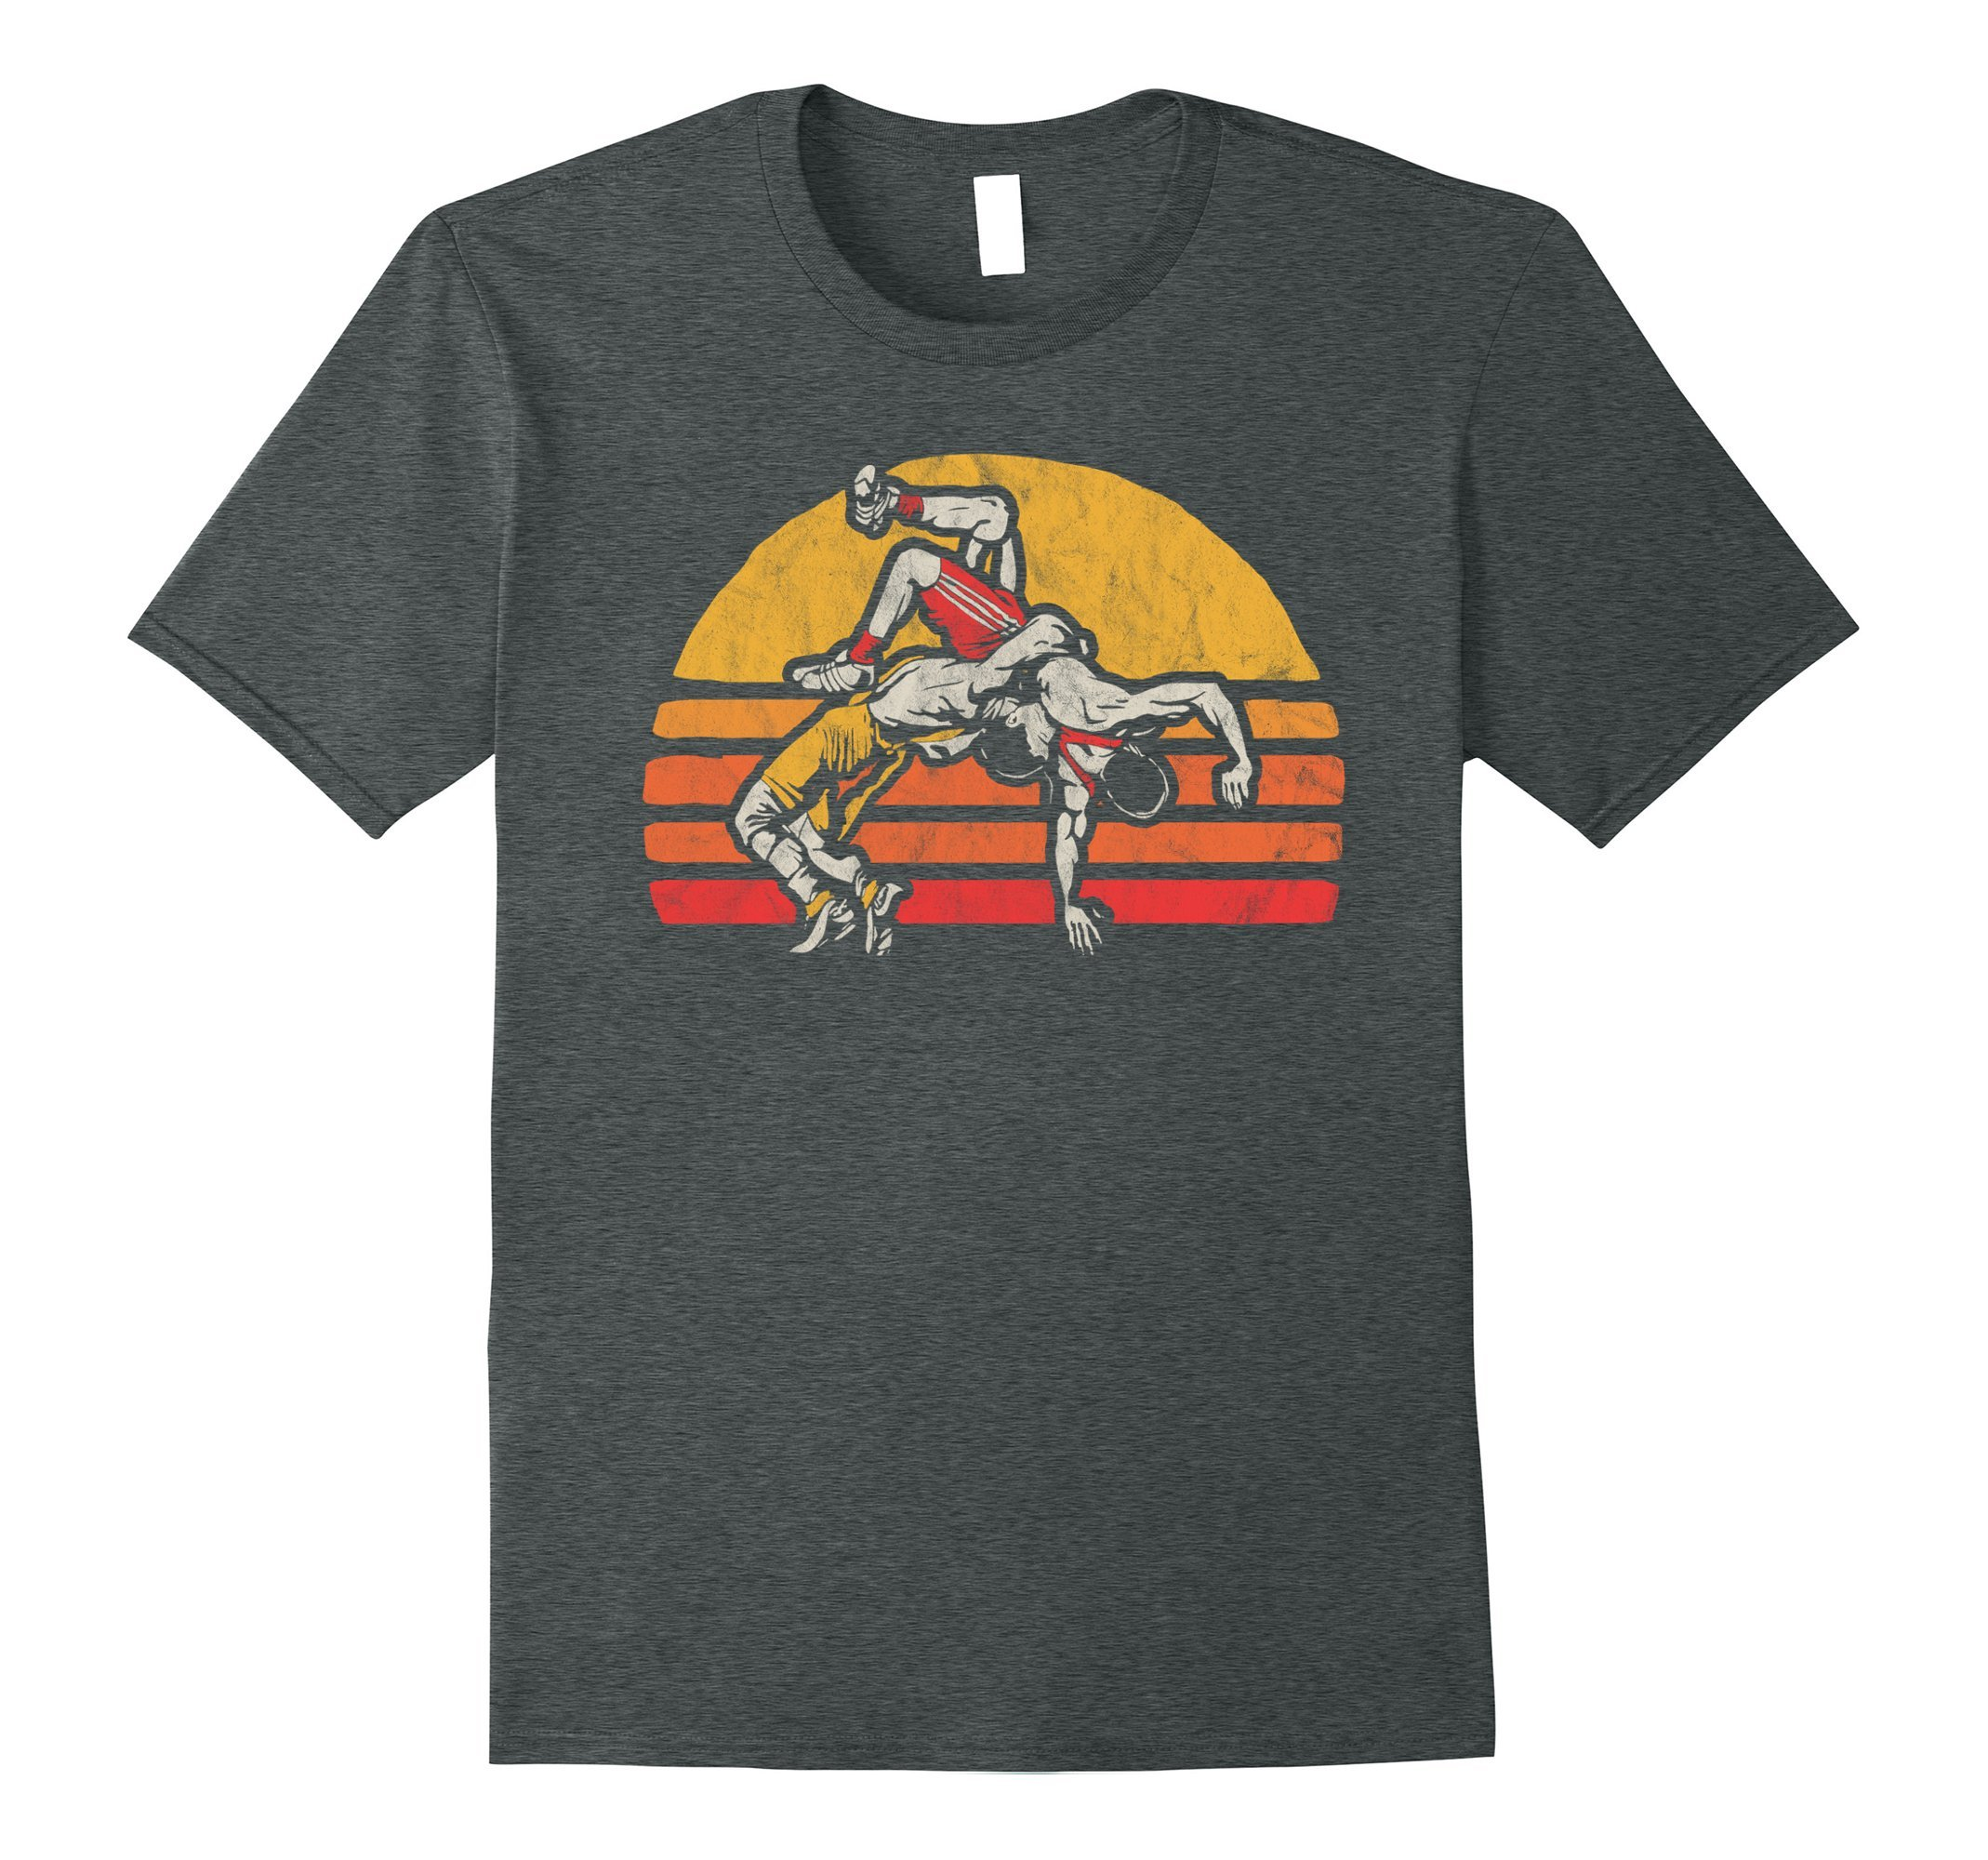 Mens Vintage Wrestling Graphic T-Shirt - Two Wrestlers and Sun Small Dark Heather